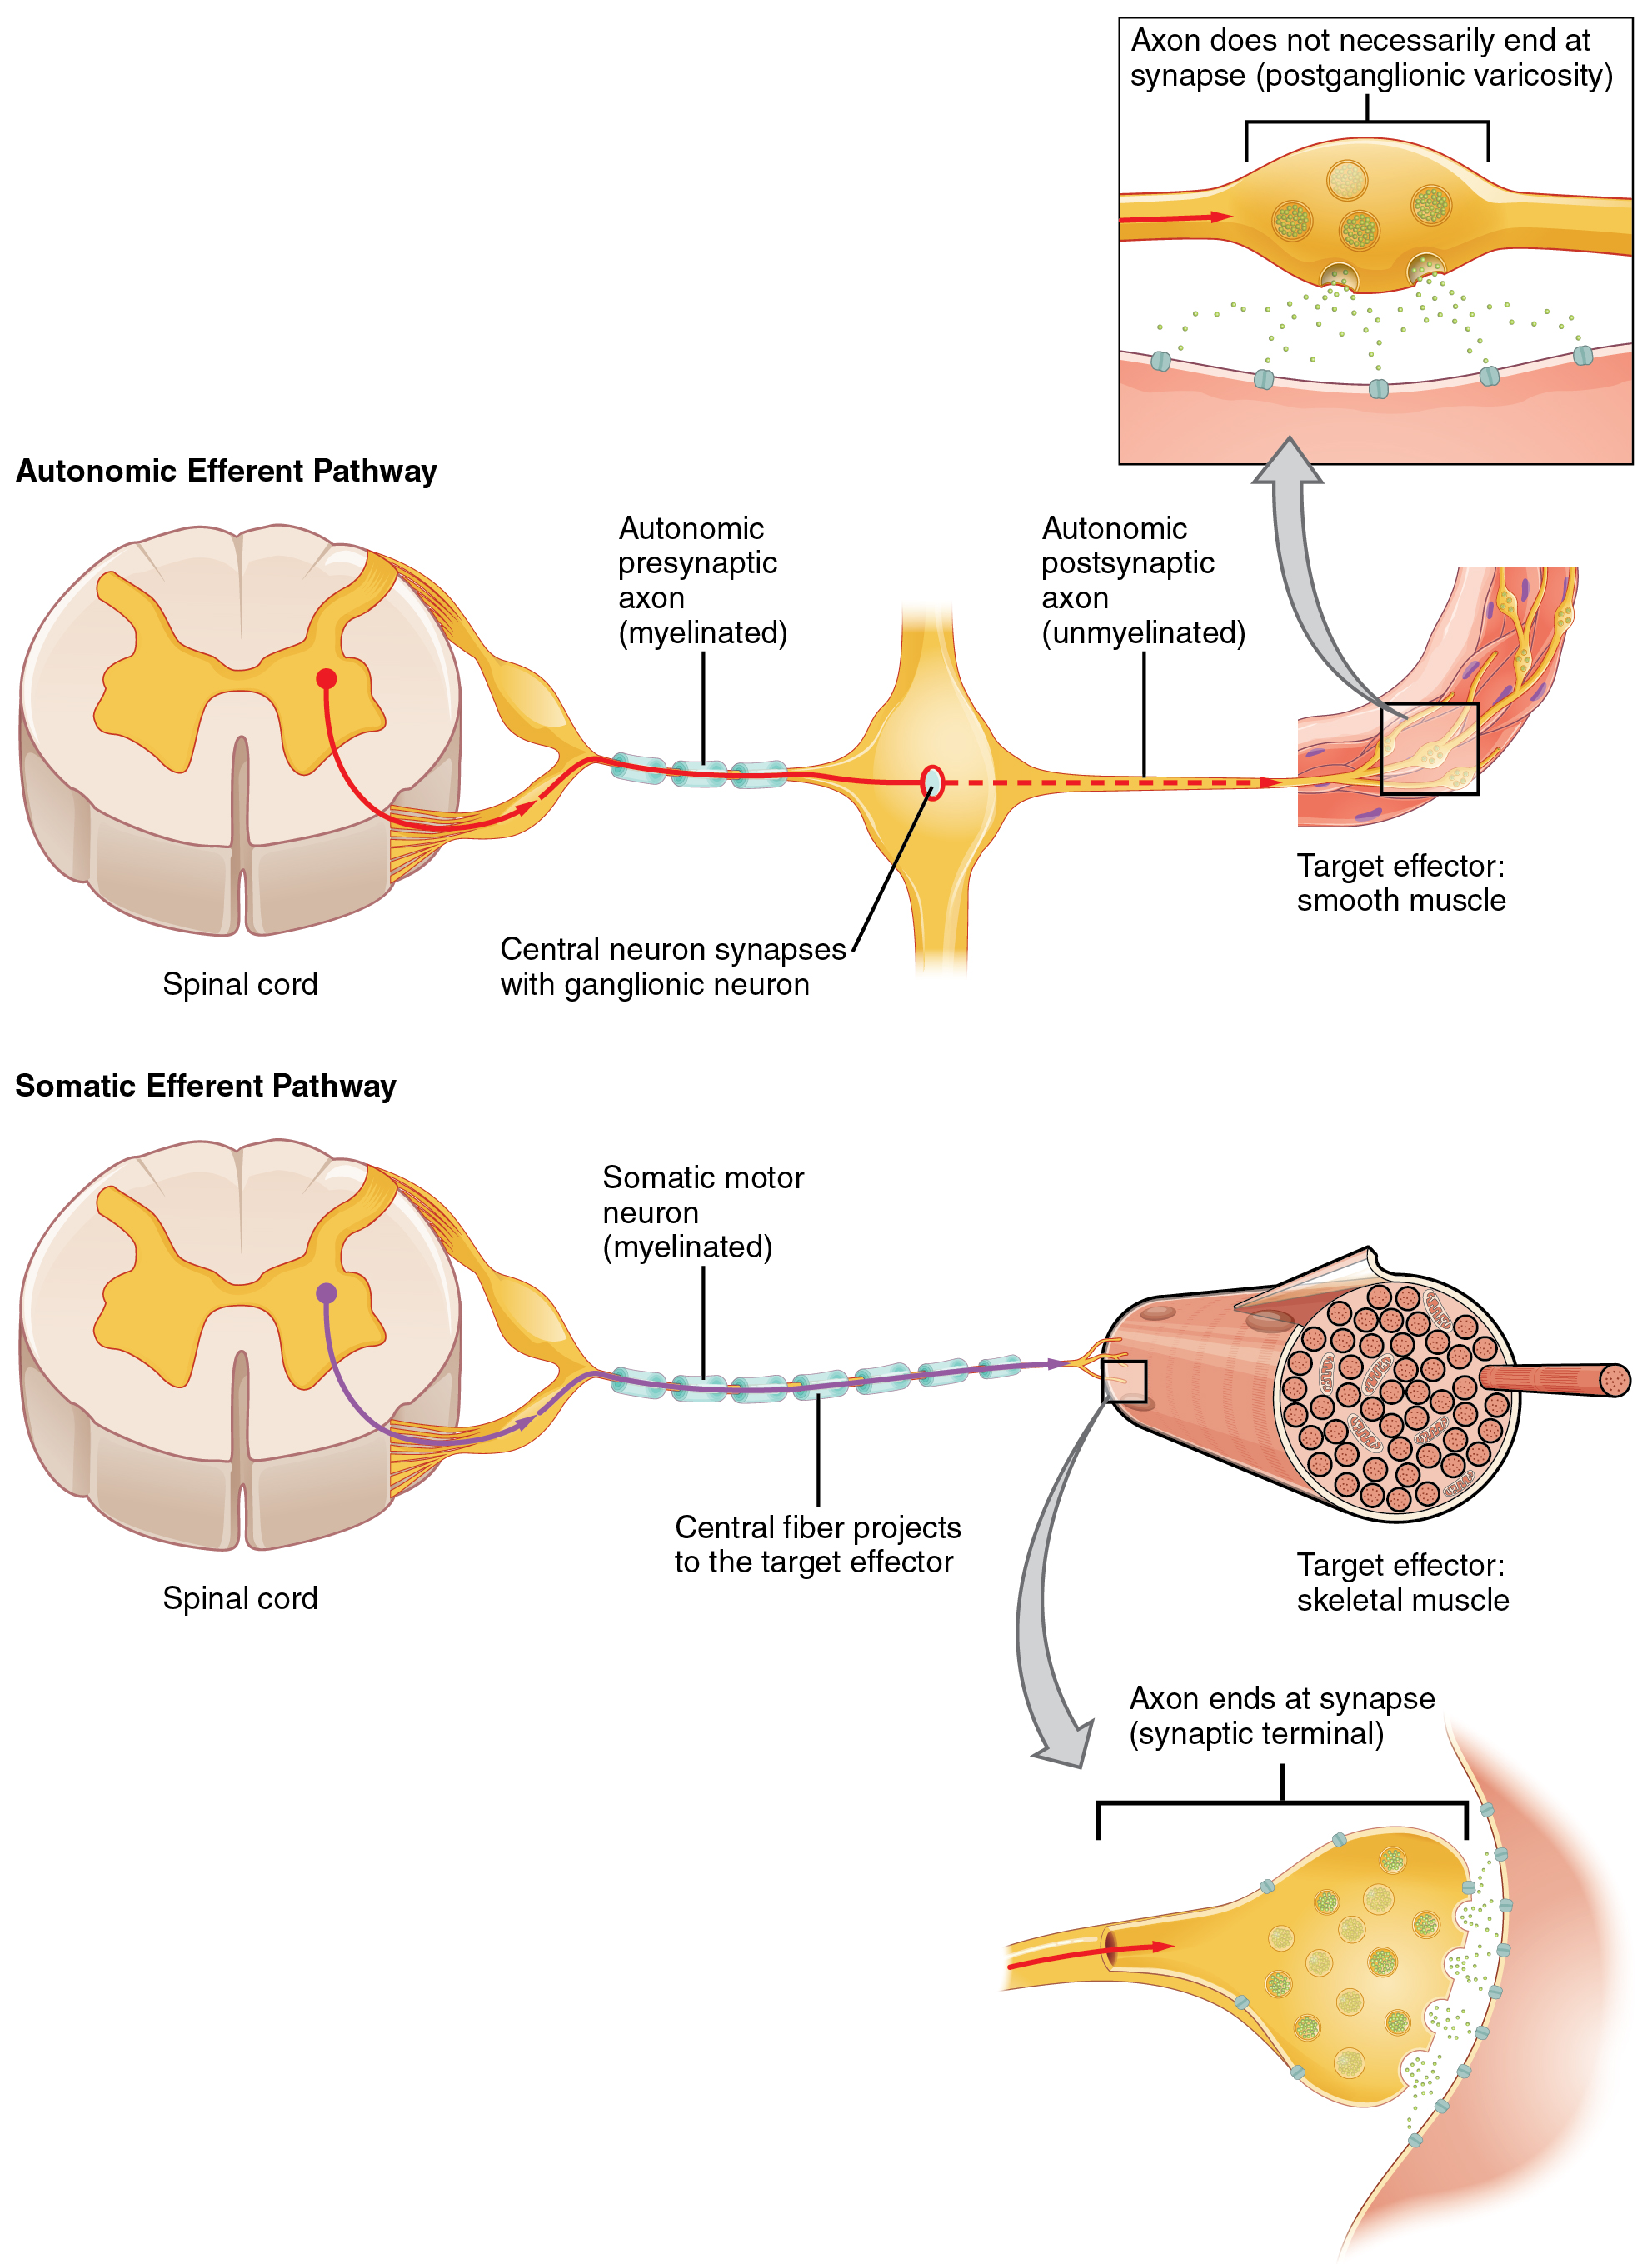 The Top Panel In This Figure Shows The Autonomic Efferent